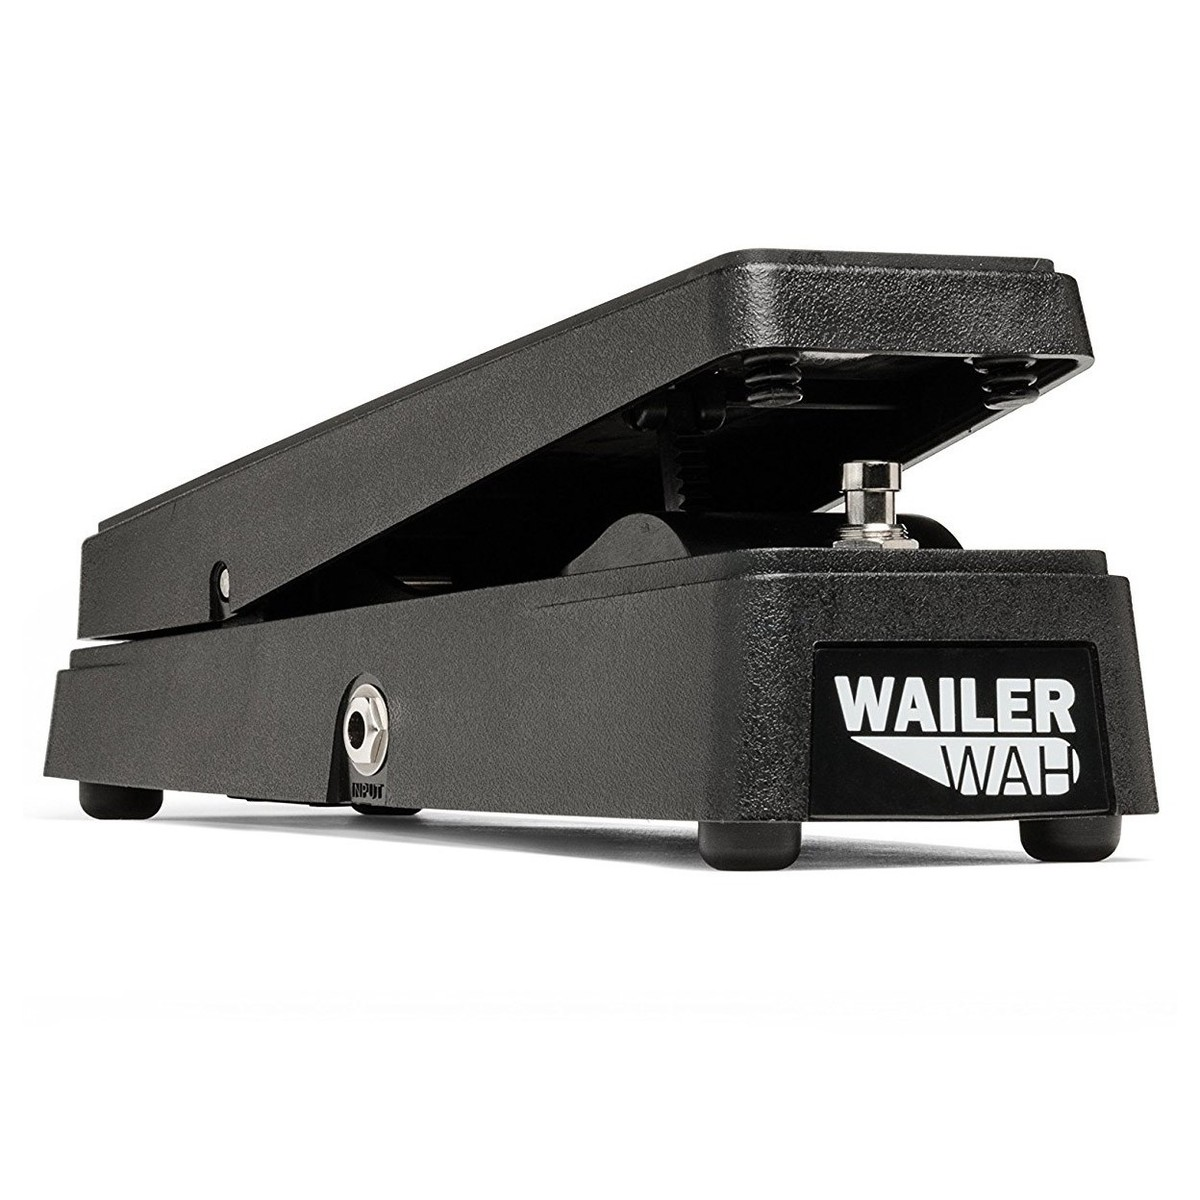 electro harmonix wailer wah polkimella b stock osoitteessa. Black Bedroom Furniture Sets. Home Design Ideas